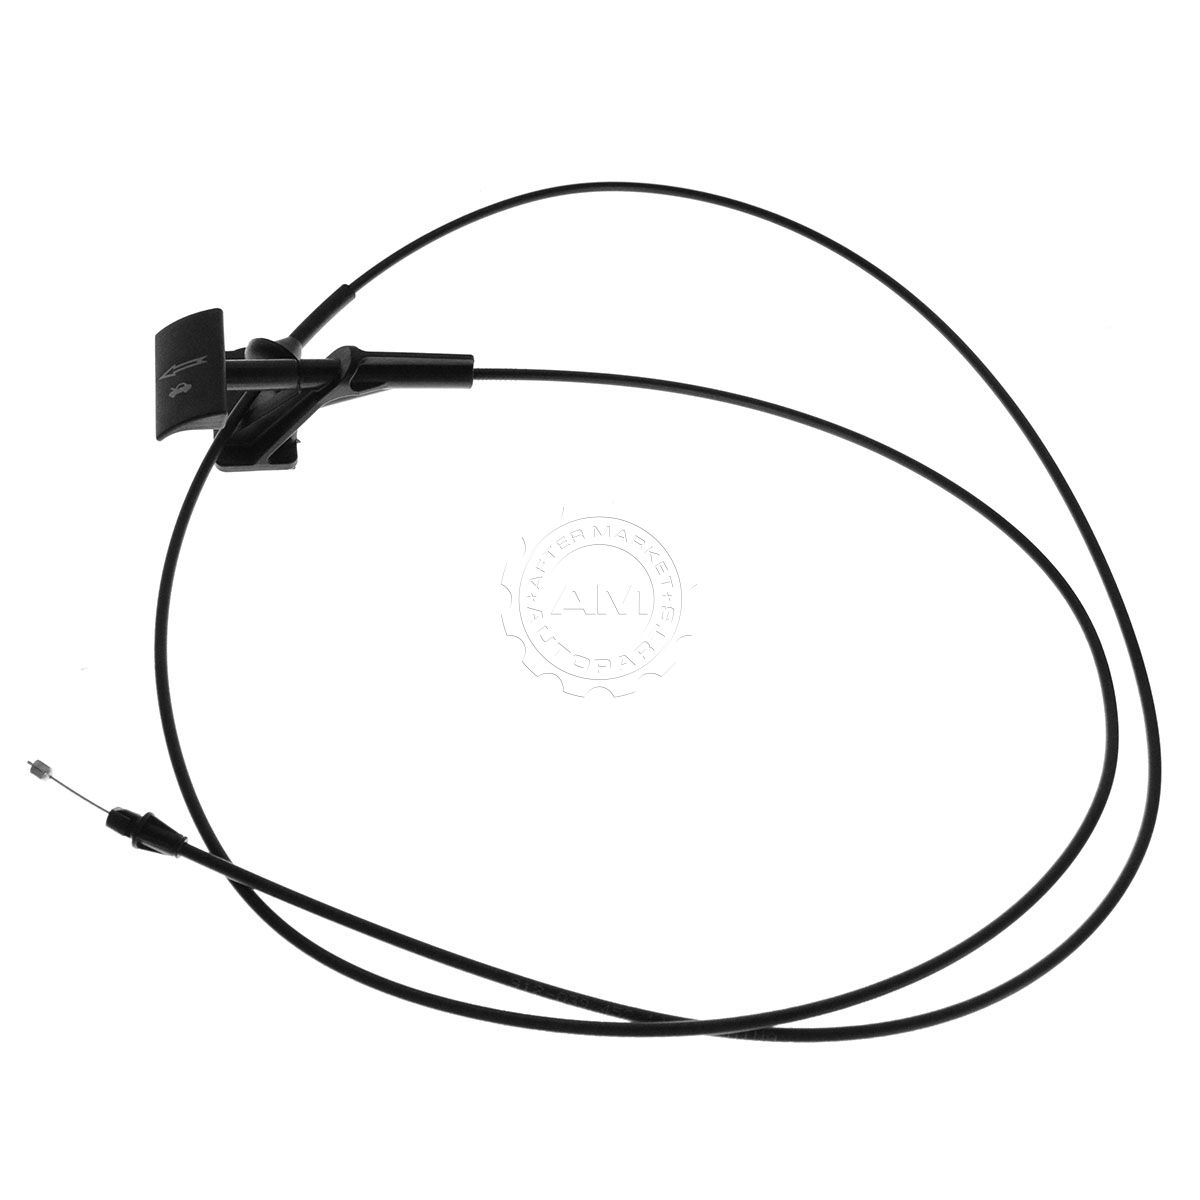 Hood Pop Release Cable With Handle For Ford F150 Lincoln